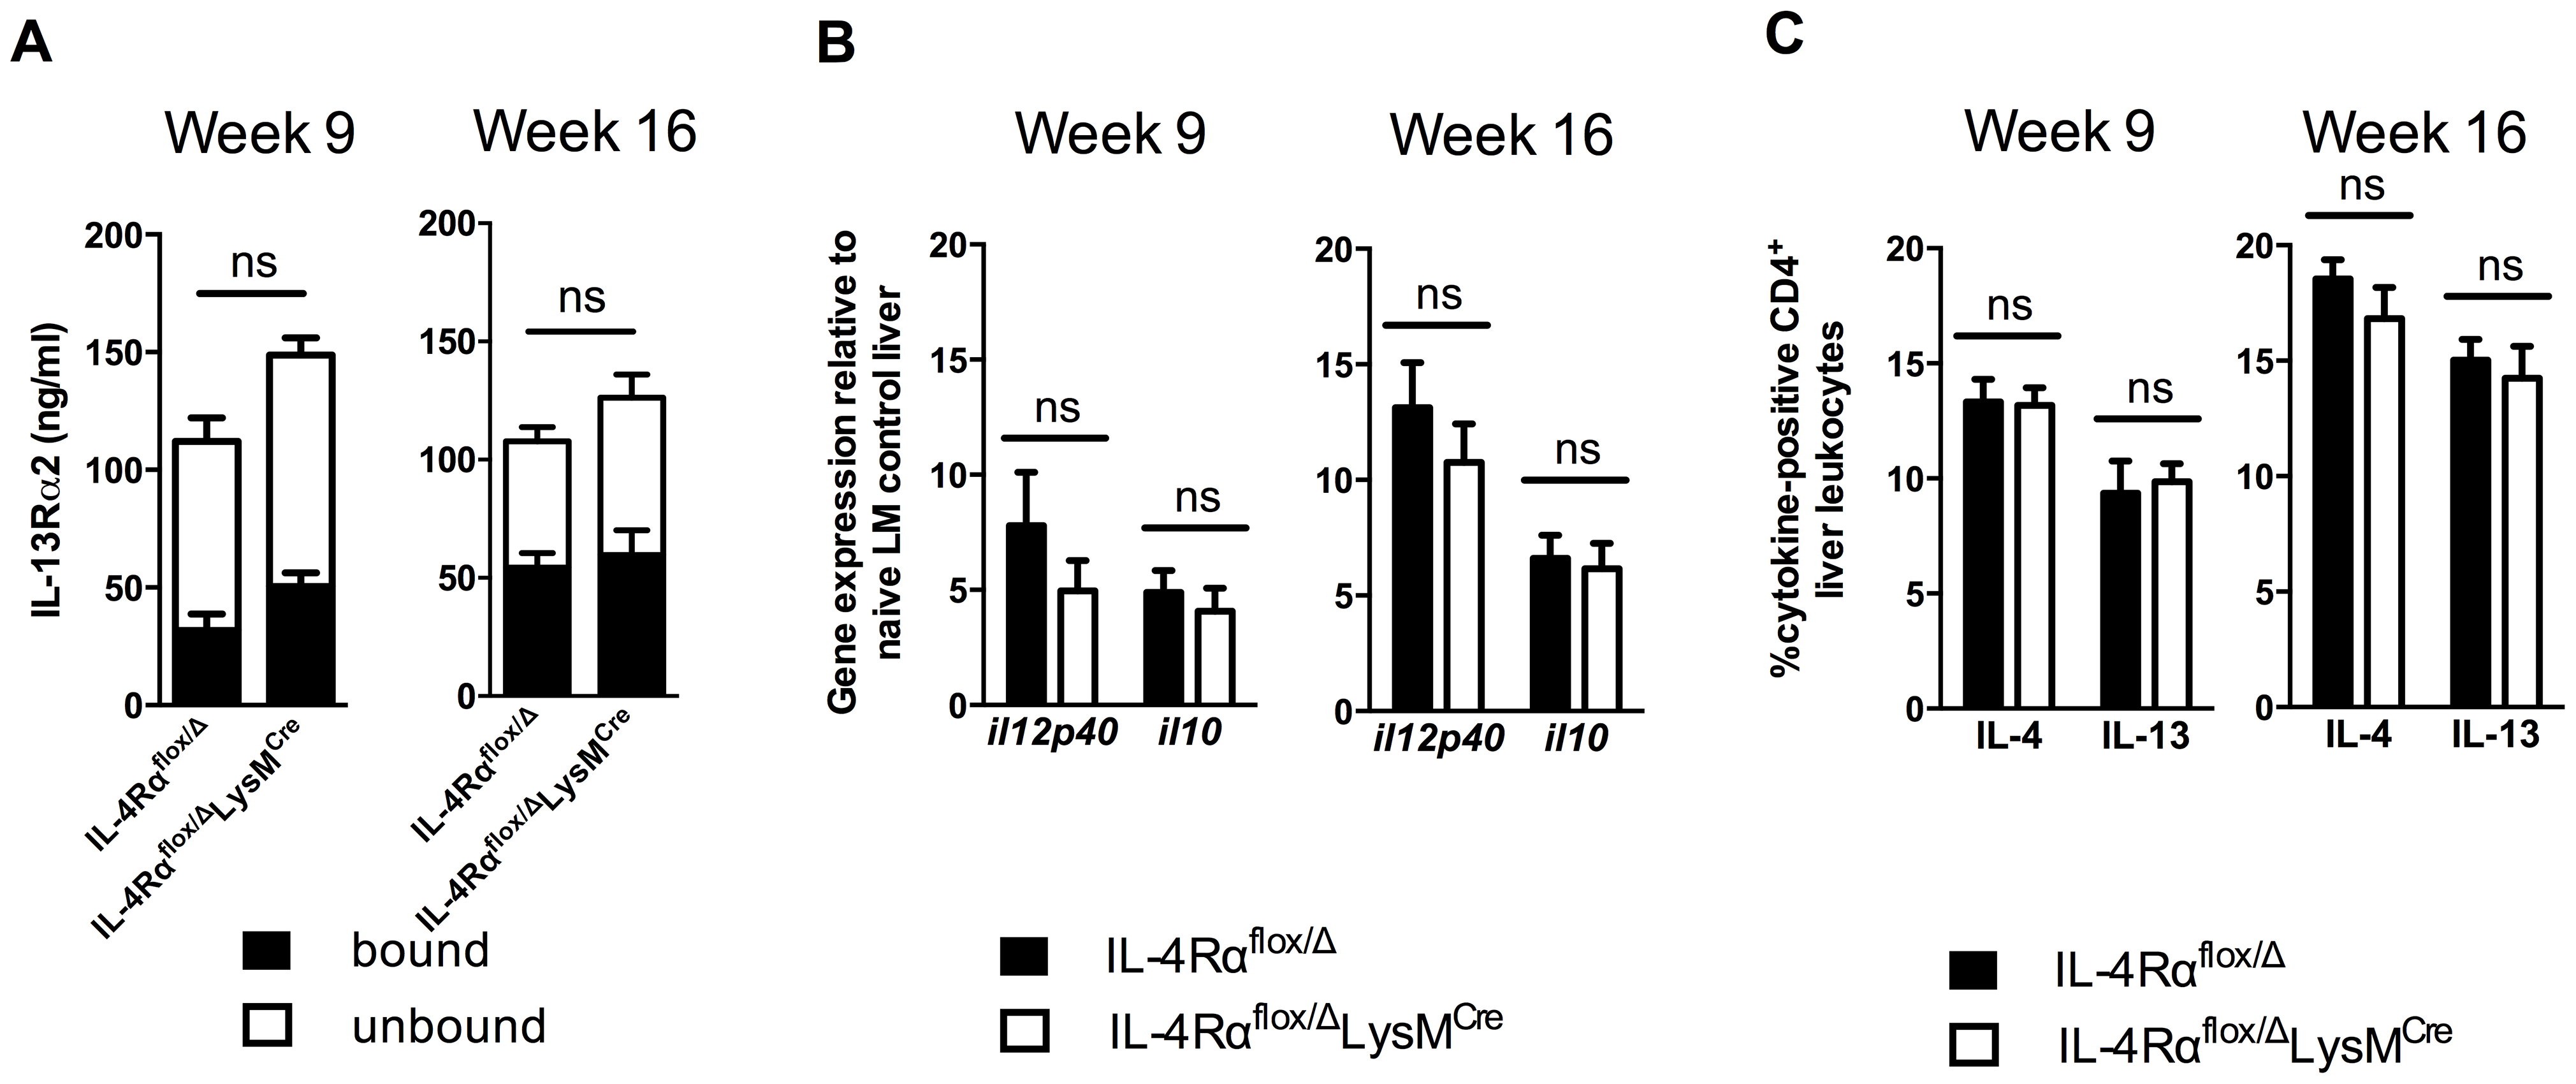 Normal cytokine response in <i>S. mansoni</i>-infected IL-4Rα<sup>flox/Δ</sup>LysM<sup>Cre</sup> mice.